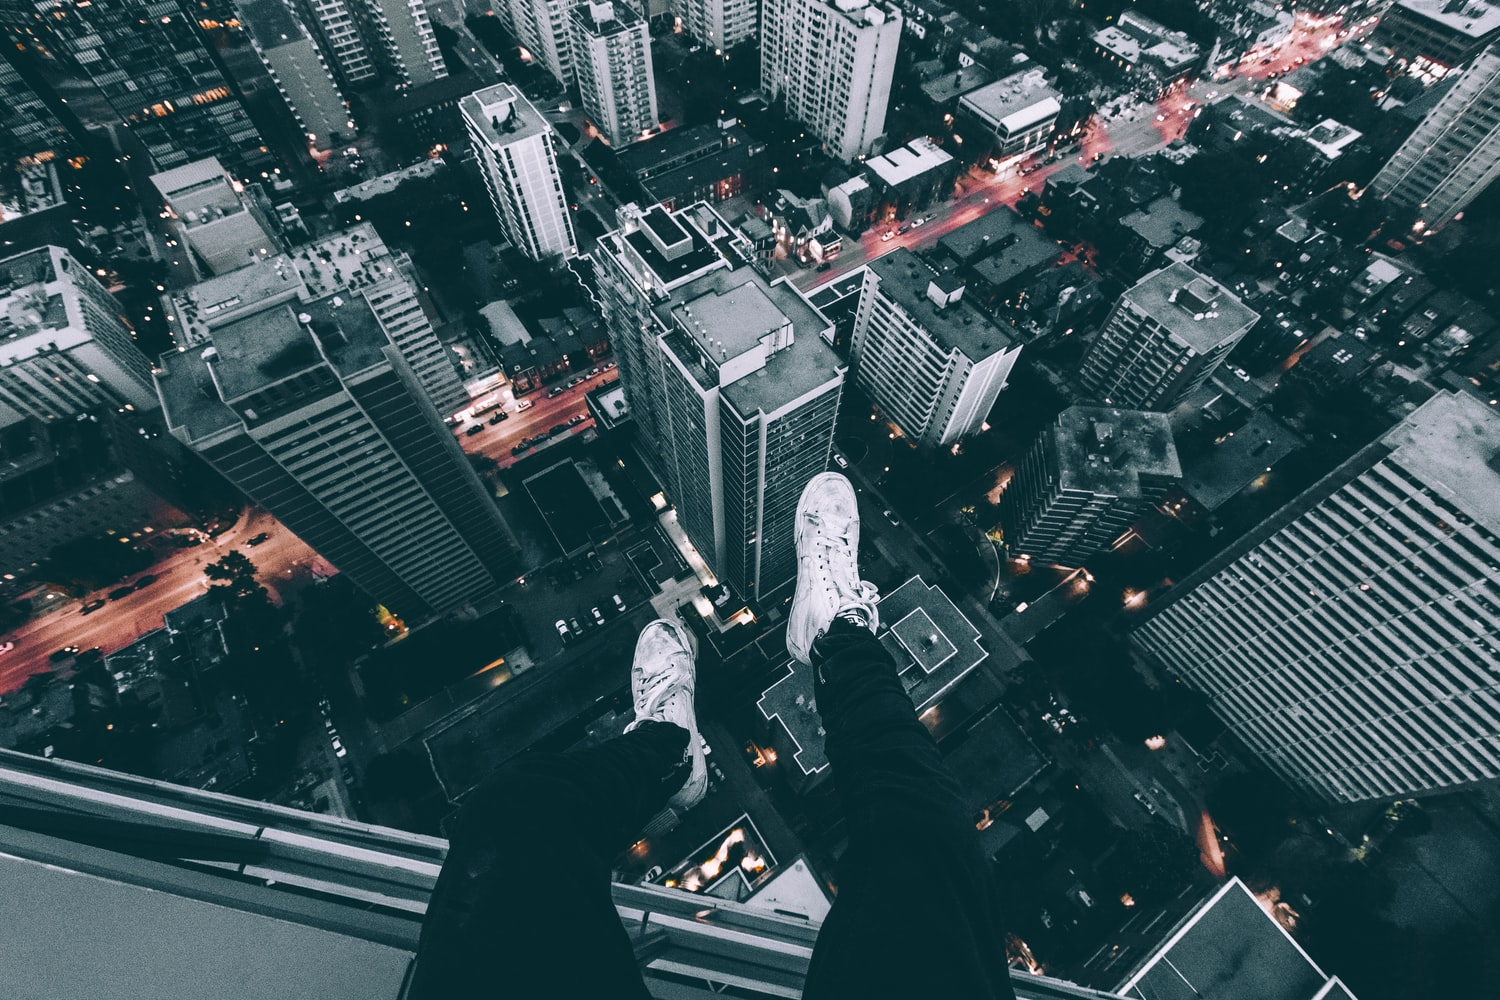 Above the City